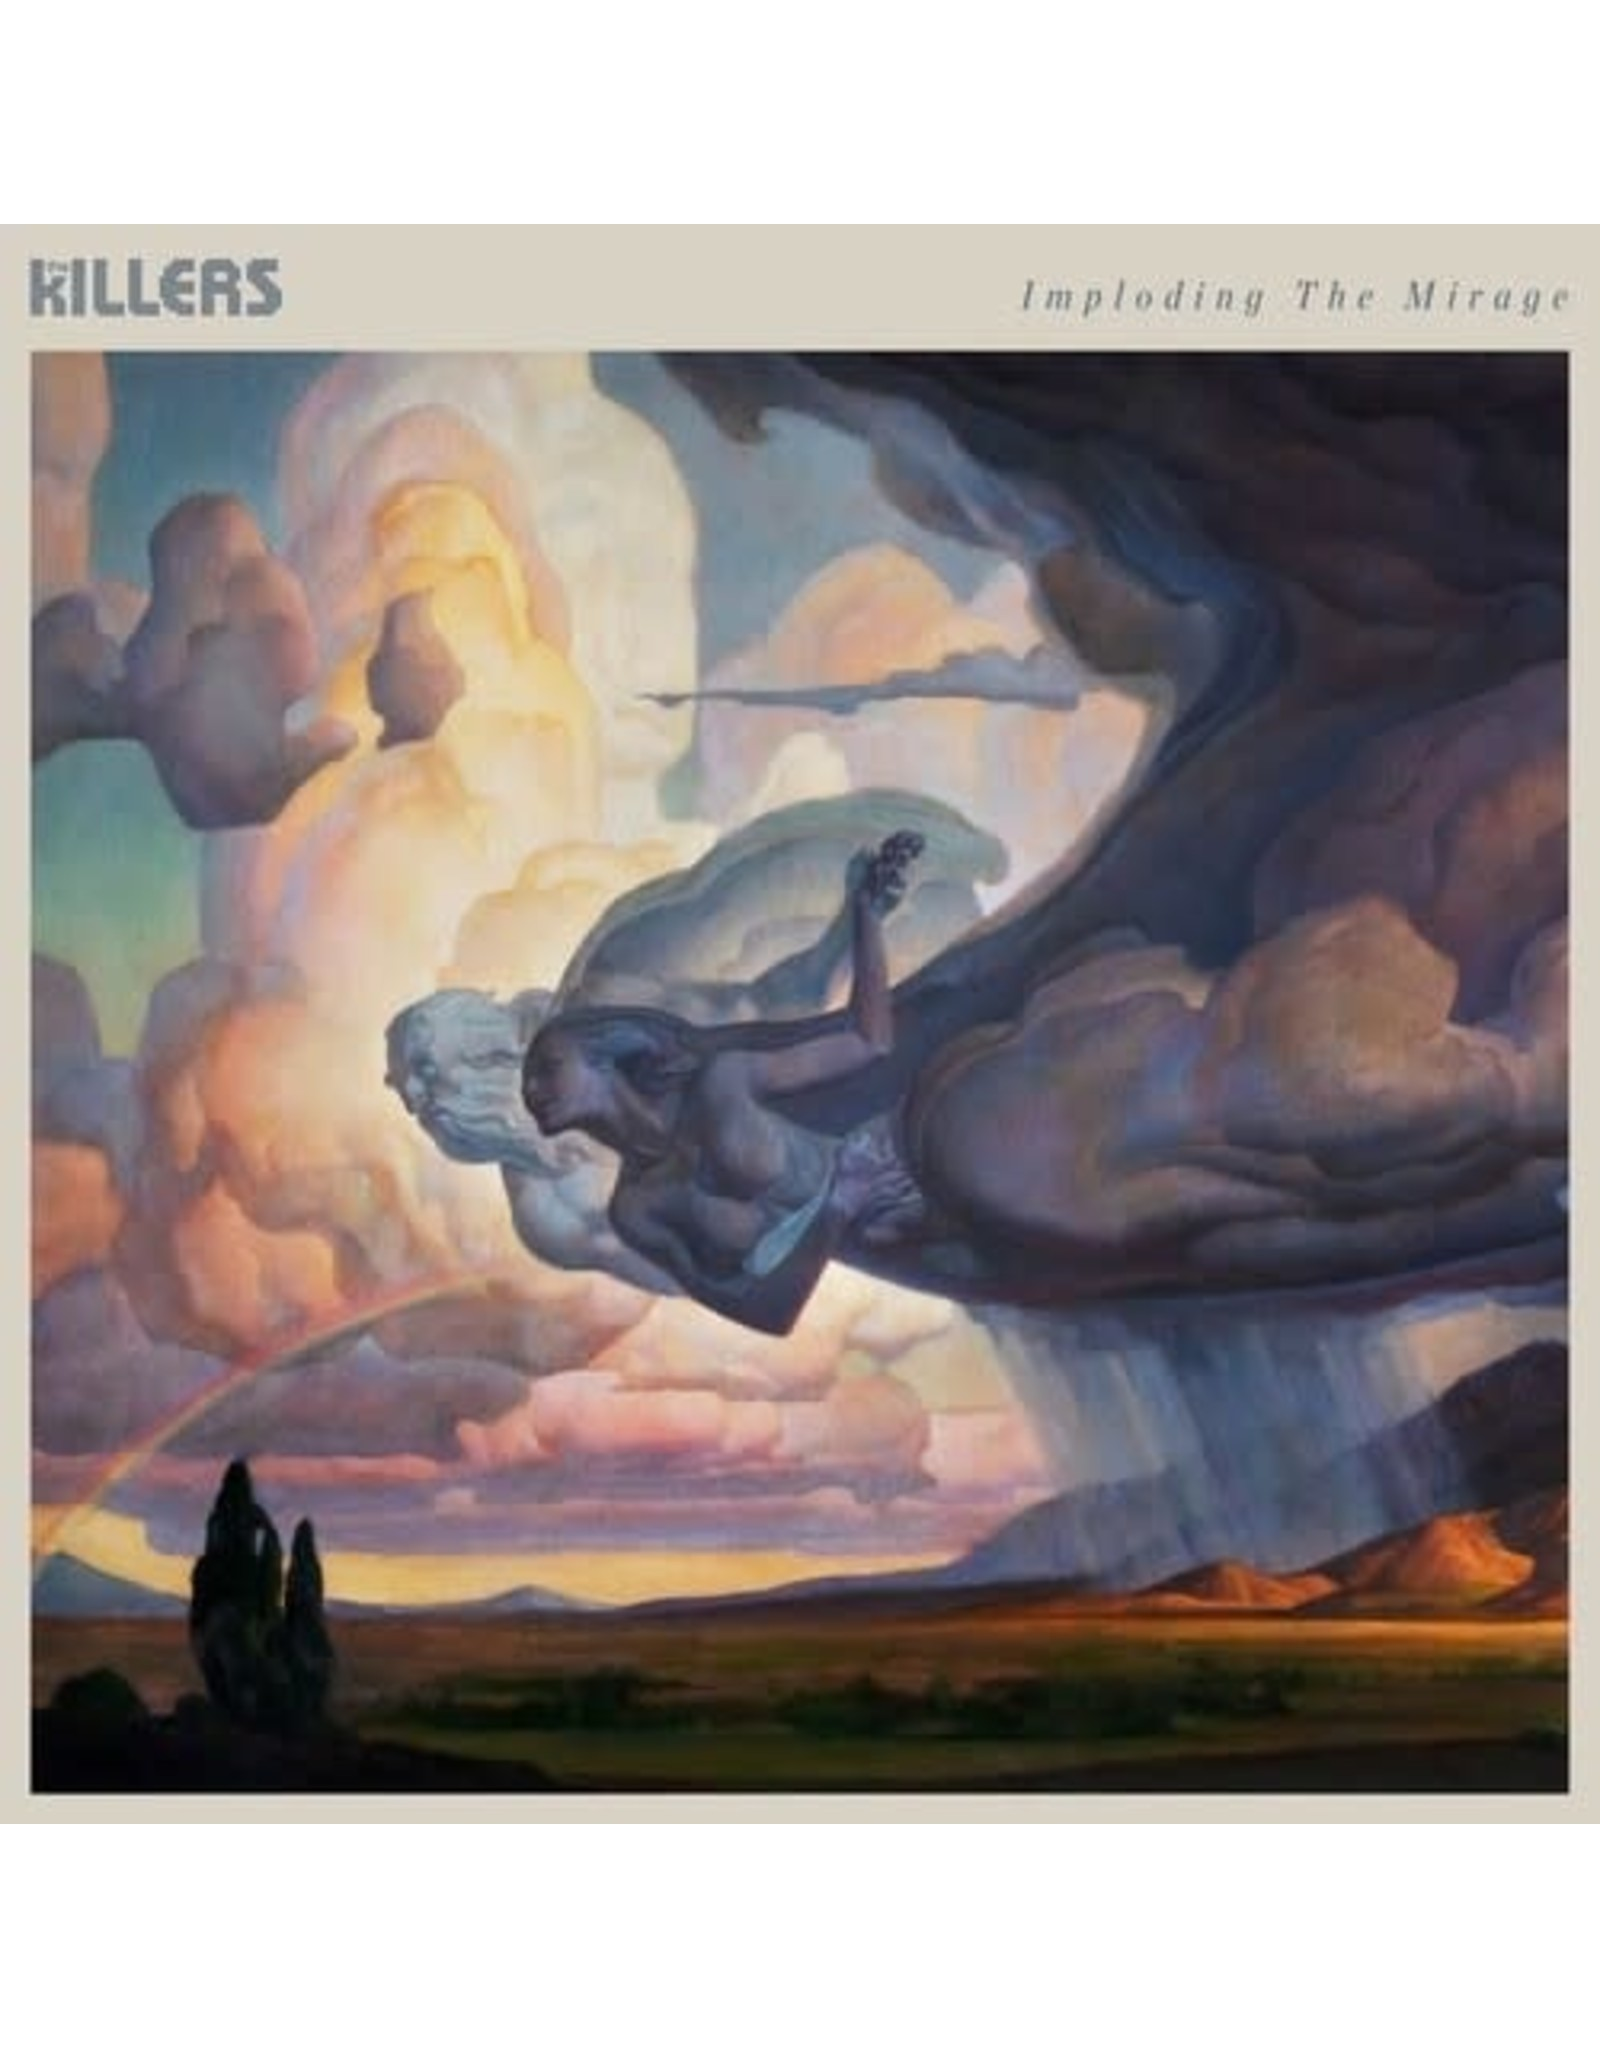 New Vinyl The Killers - Imploding The Mirage LP